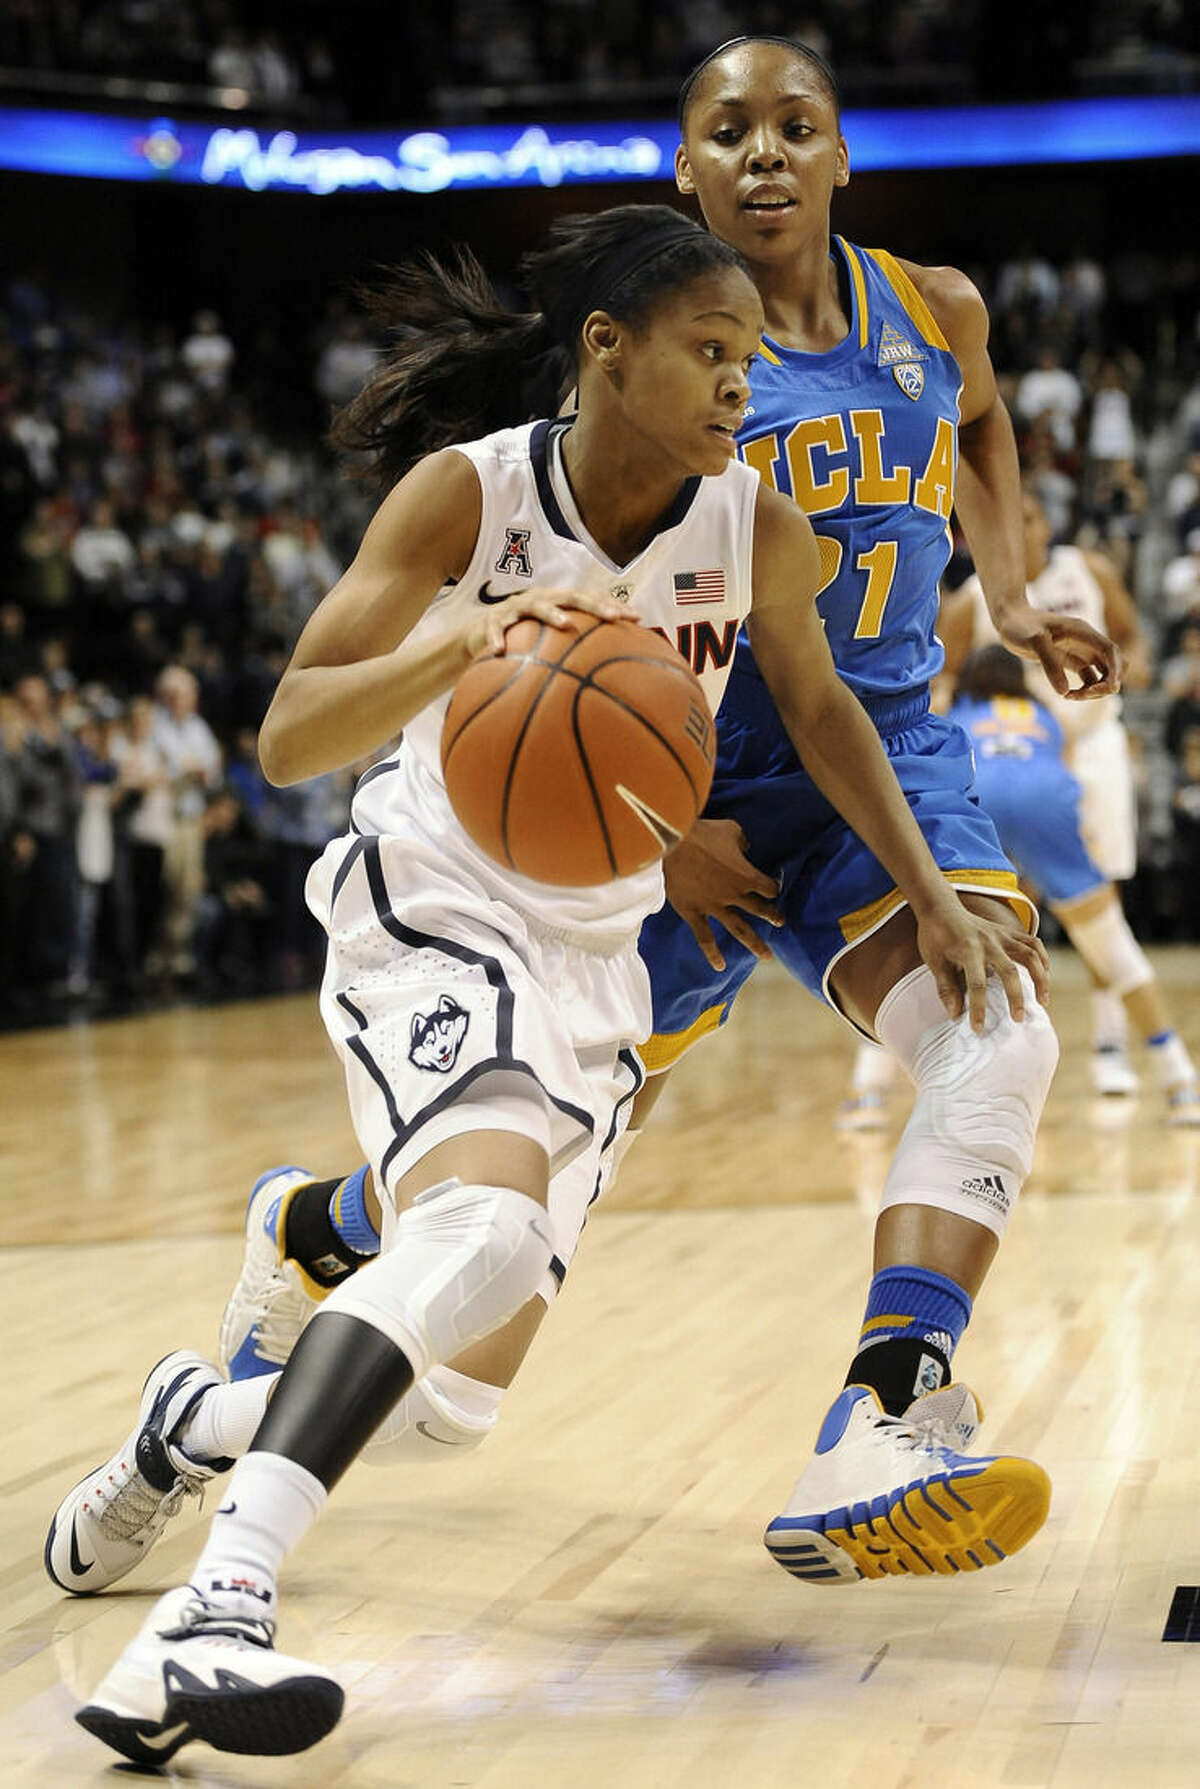 Connecticut's Moriah Jefferson, left, drives around UCLA's Nirra Fields, right, during the first half of an NCAA college basketball game, Sunday, Dec. 21, 2014, in Uncasville, Conn. (AP Photo/Jessica Hill)